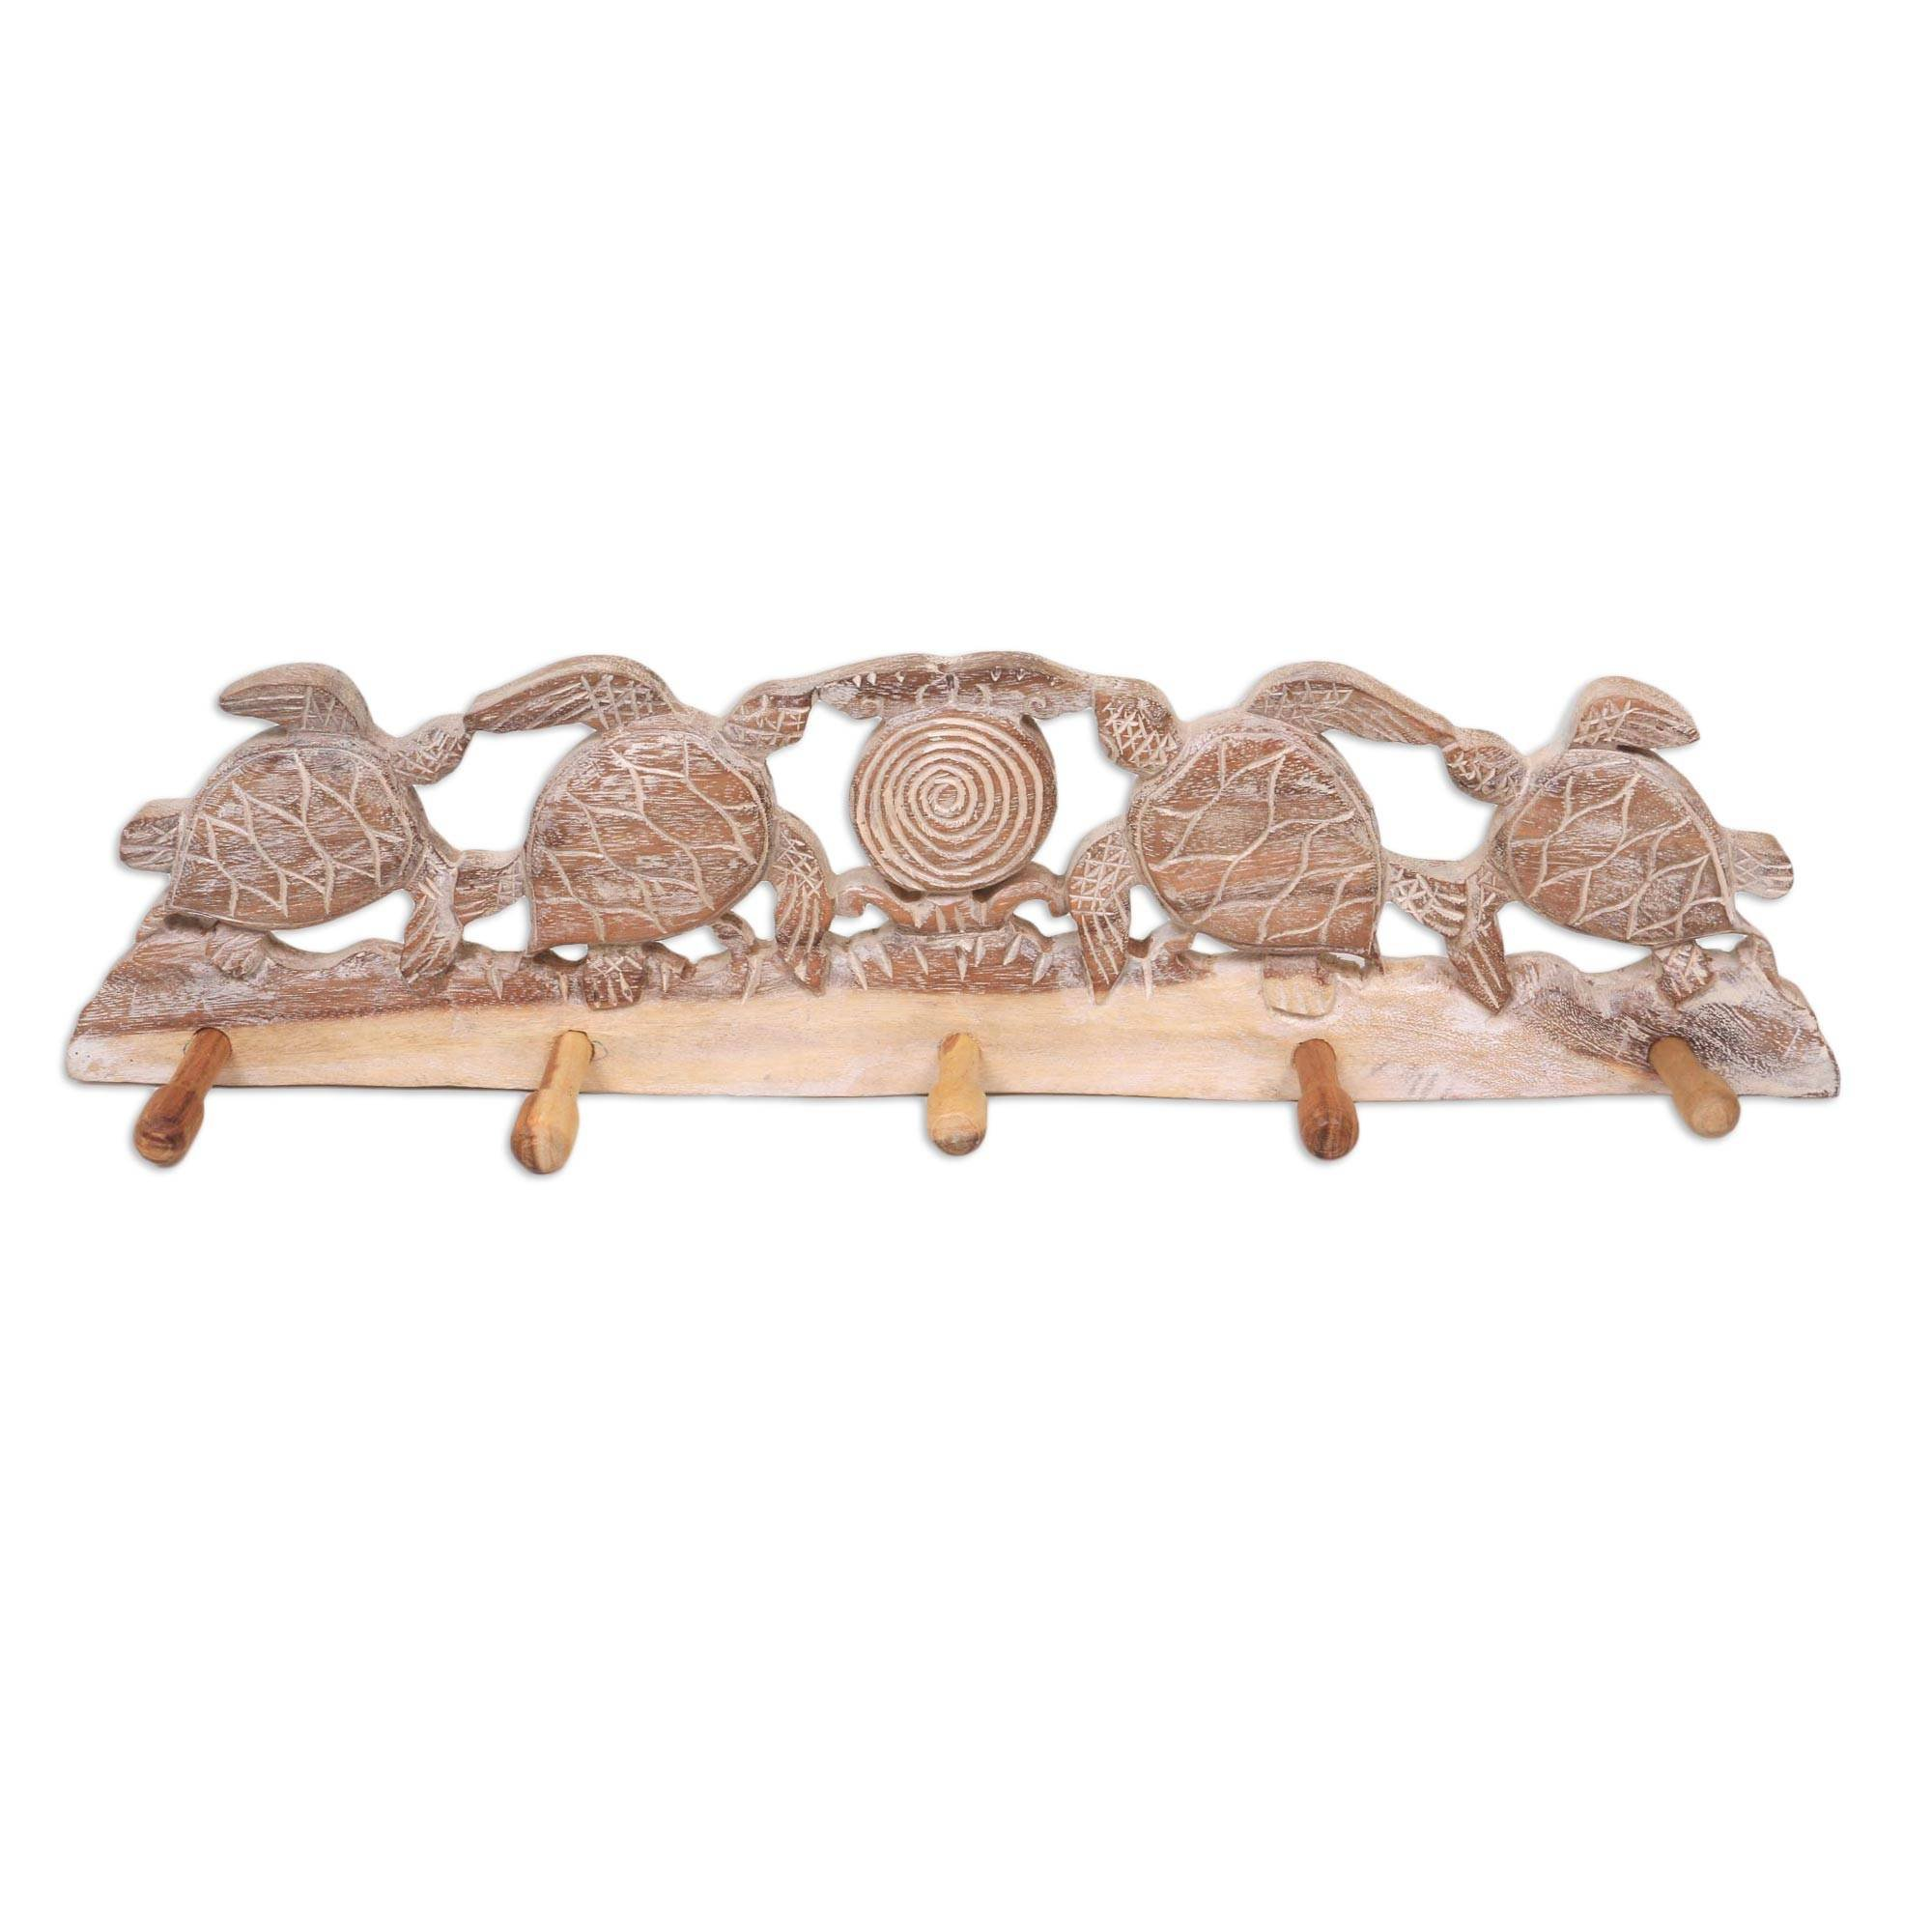 NOVICA Animal Themed Wood Wall Mounted Coat Hanger, Brown and White, Turtle Bay Beach'